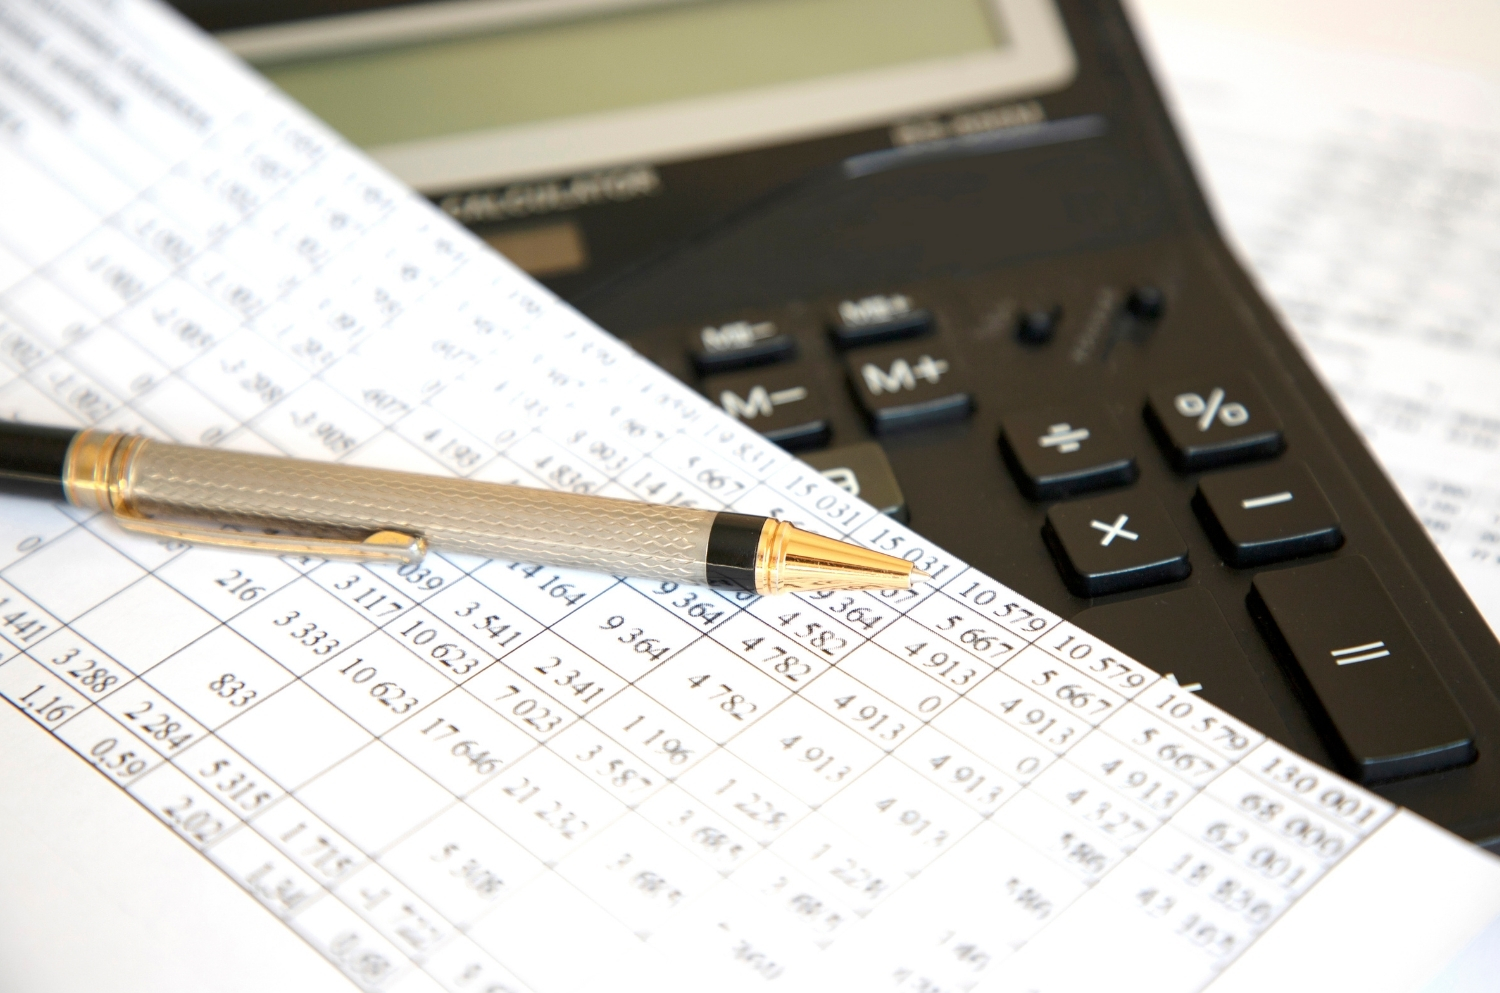 picture of spreadsheet and calculator - property analyzation by commercial real estate broker